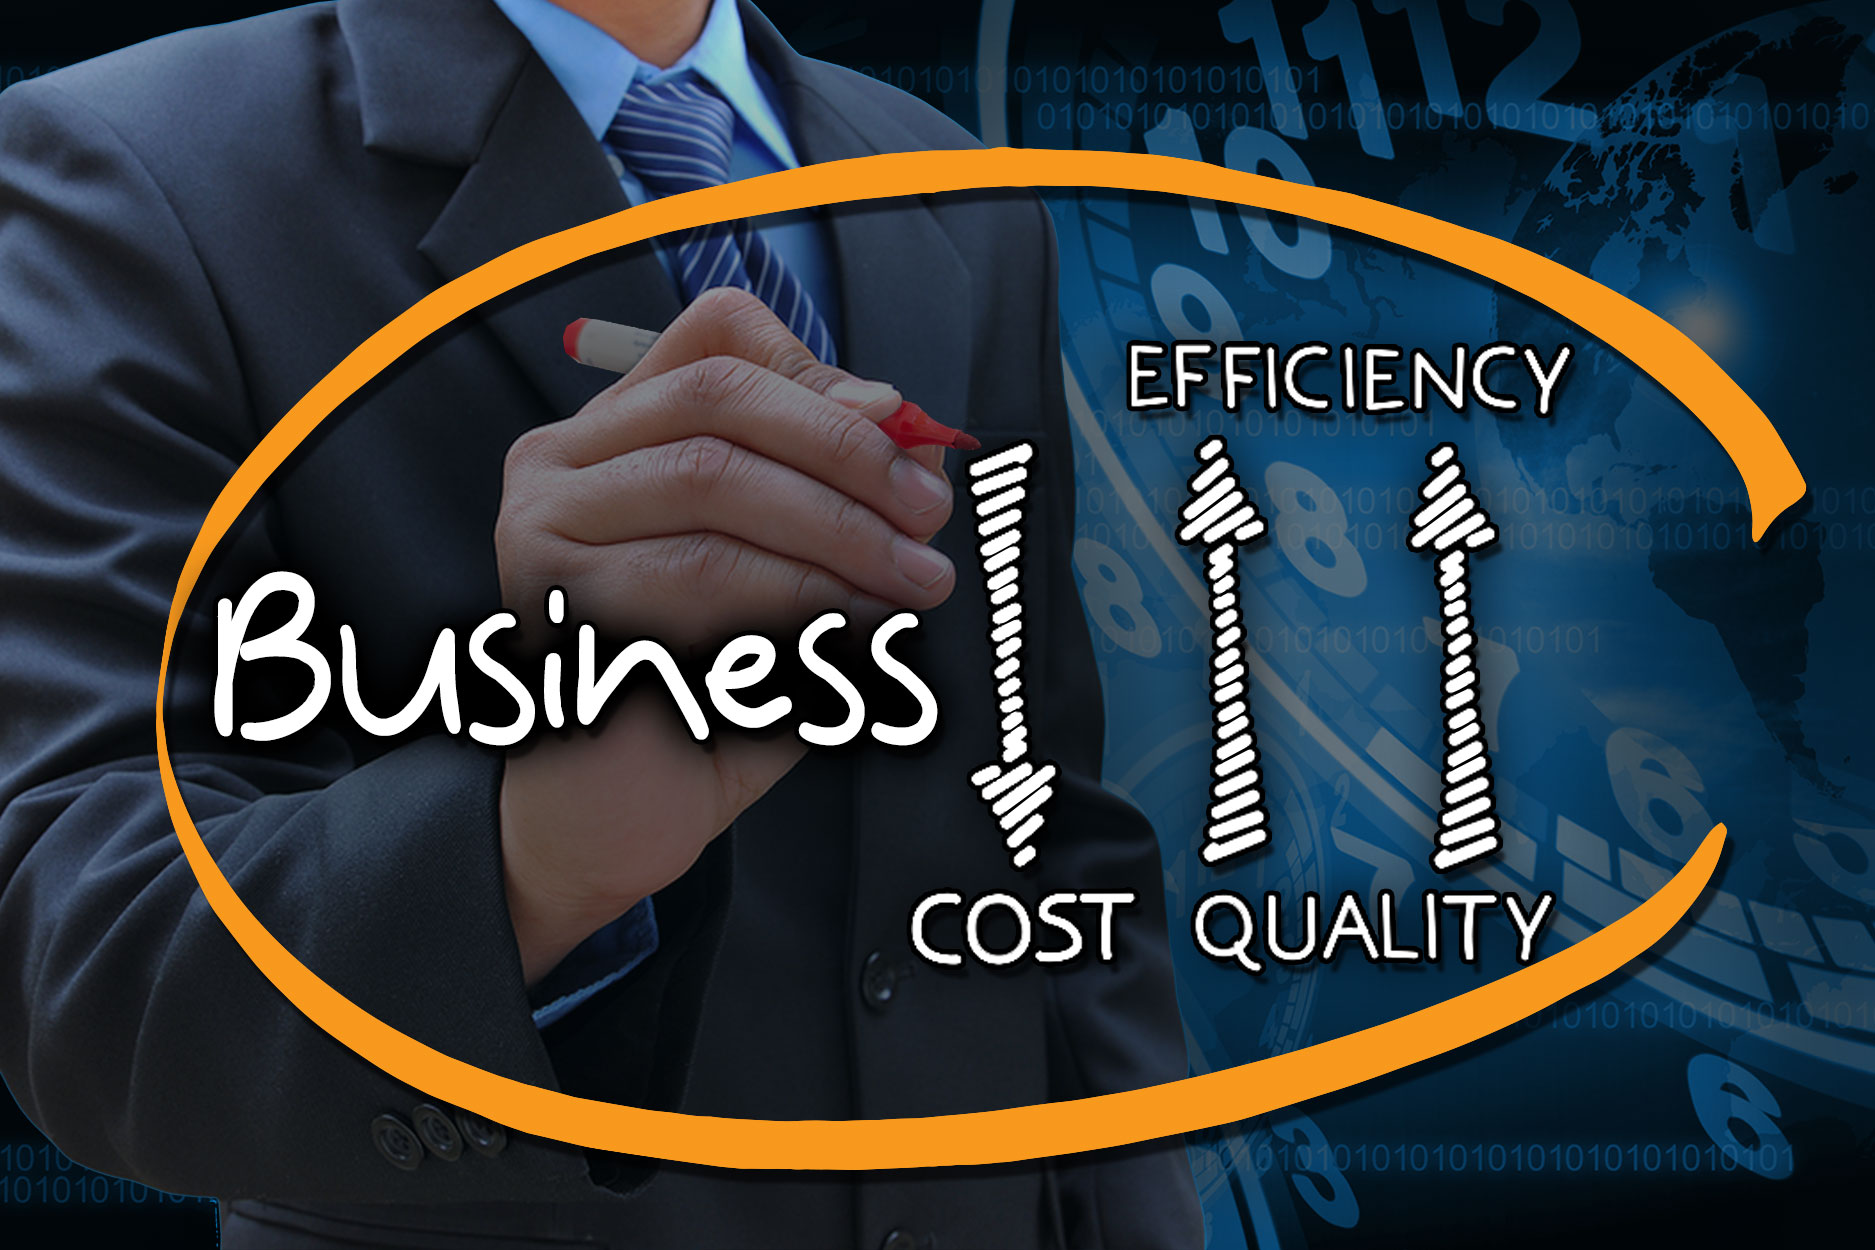 Raetech-Quality-efficiency-and-cost